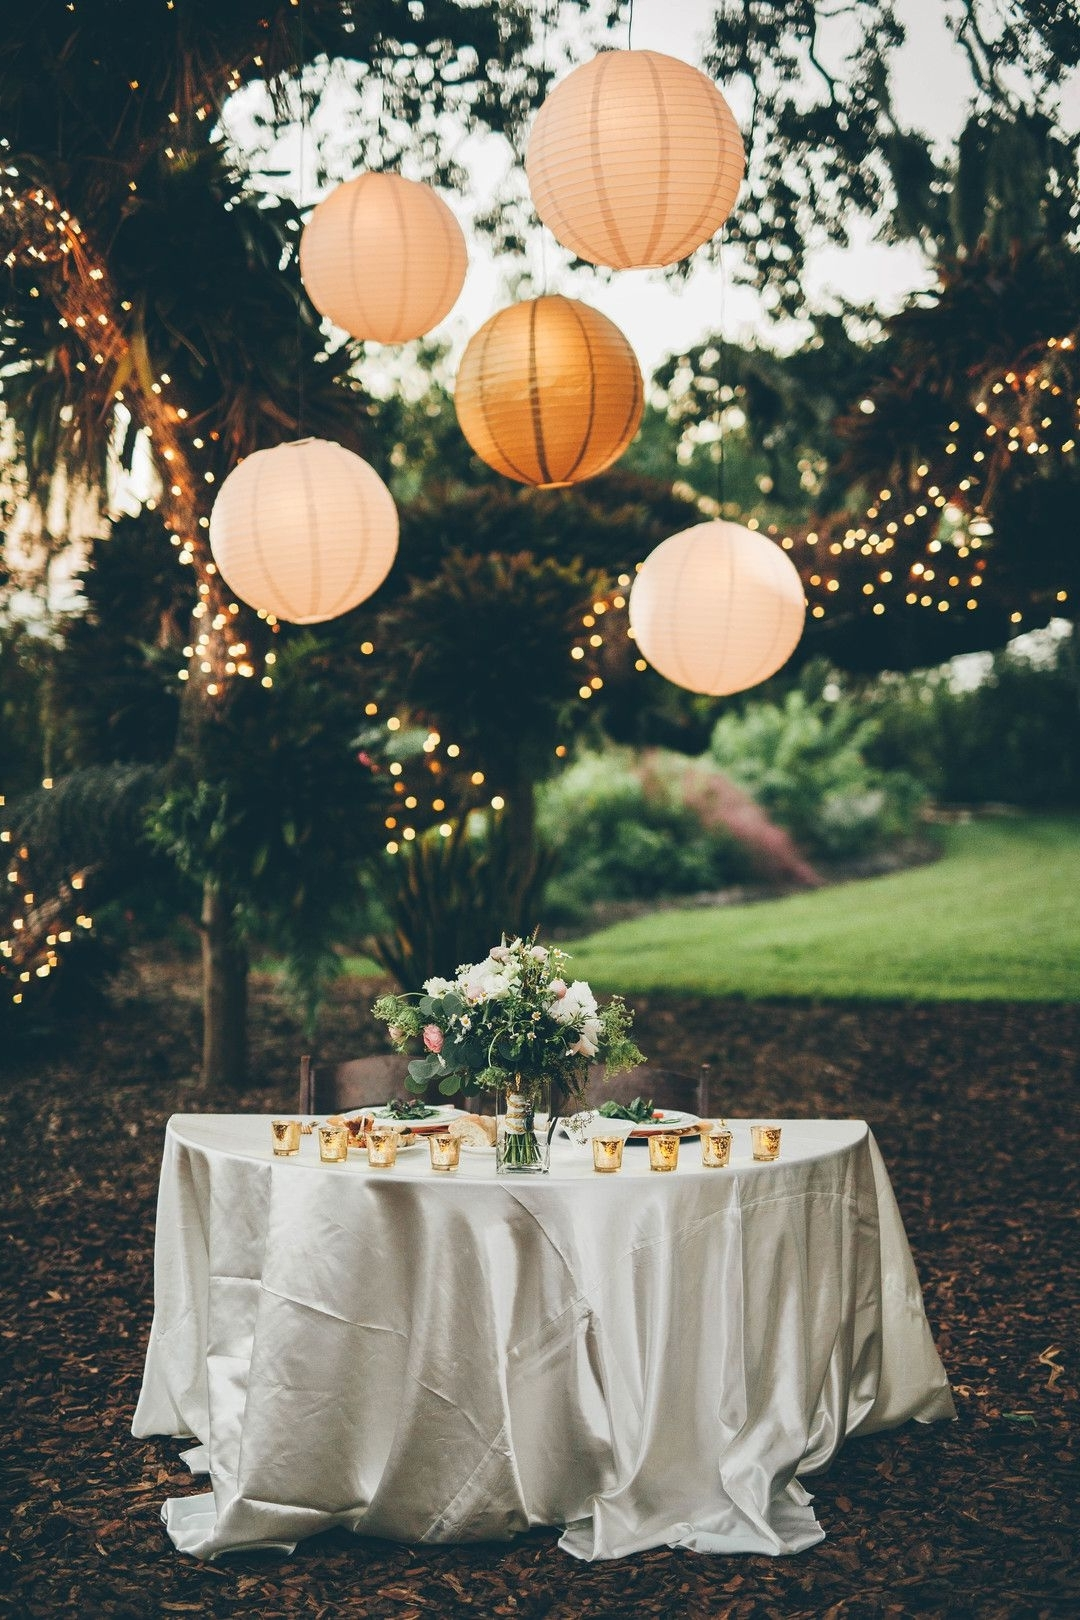 Outdoor Paper Lanterns Throughout Recent Wedding Reception Lighting Design, Paper Lantern Globes, Trees (View 13 of 20)